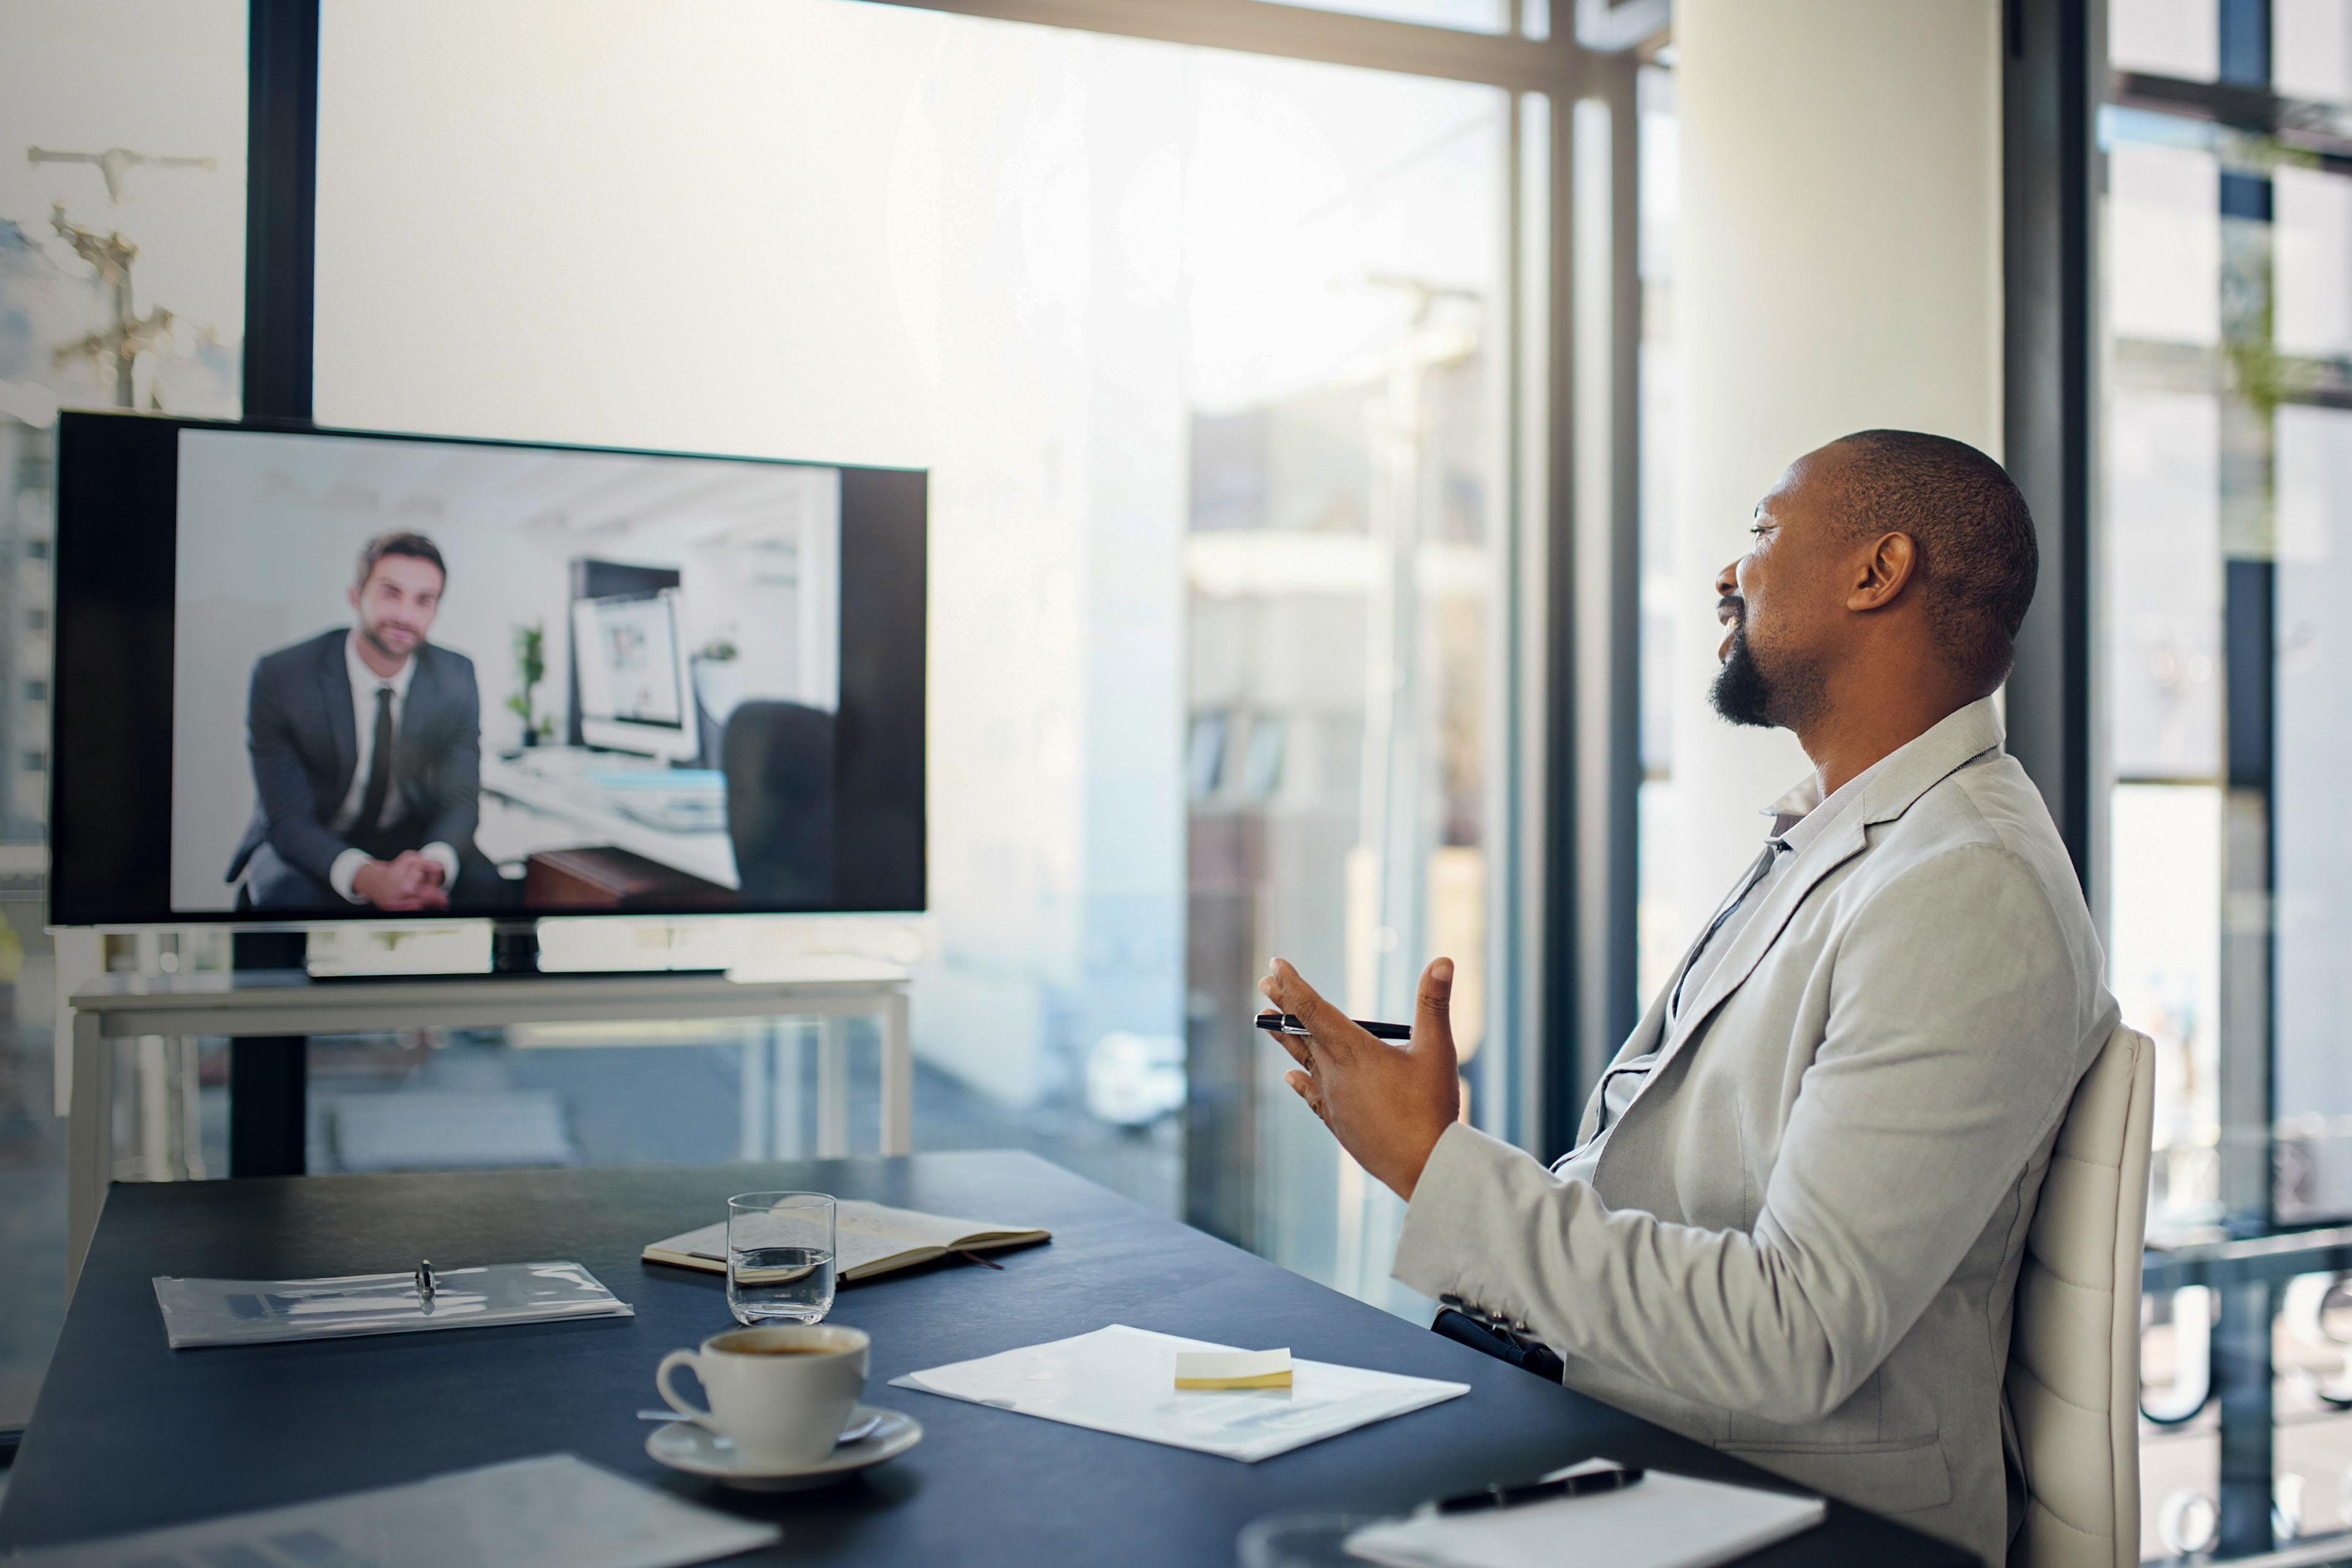 two businessmen having a video conference